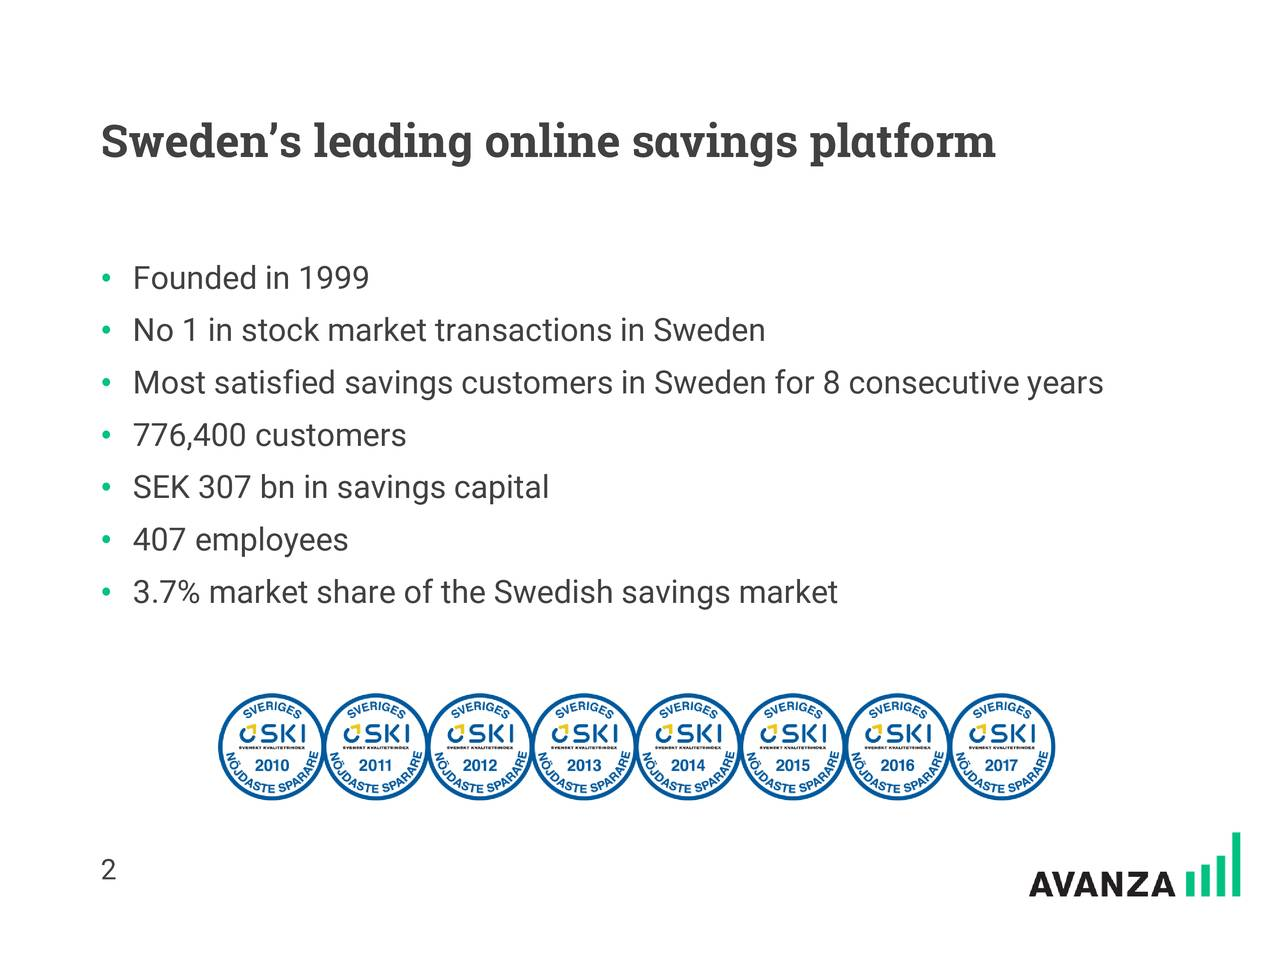 • Founded in 1999 • No 1 in stock market transactions in Sweden • Most satisfied savings customers in Sweden for 8 consecutive years • 776,400 customers • SEK 307 bn in savings capital • 407 employees • 3.7% market share of the Swedish savings market 2